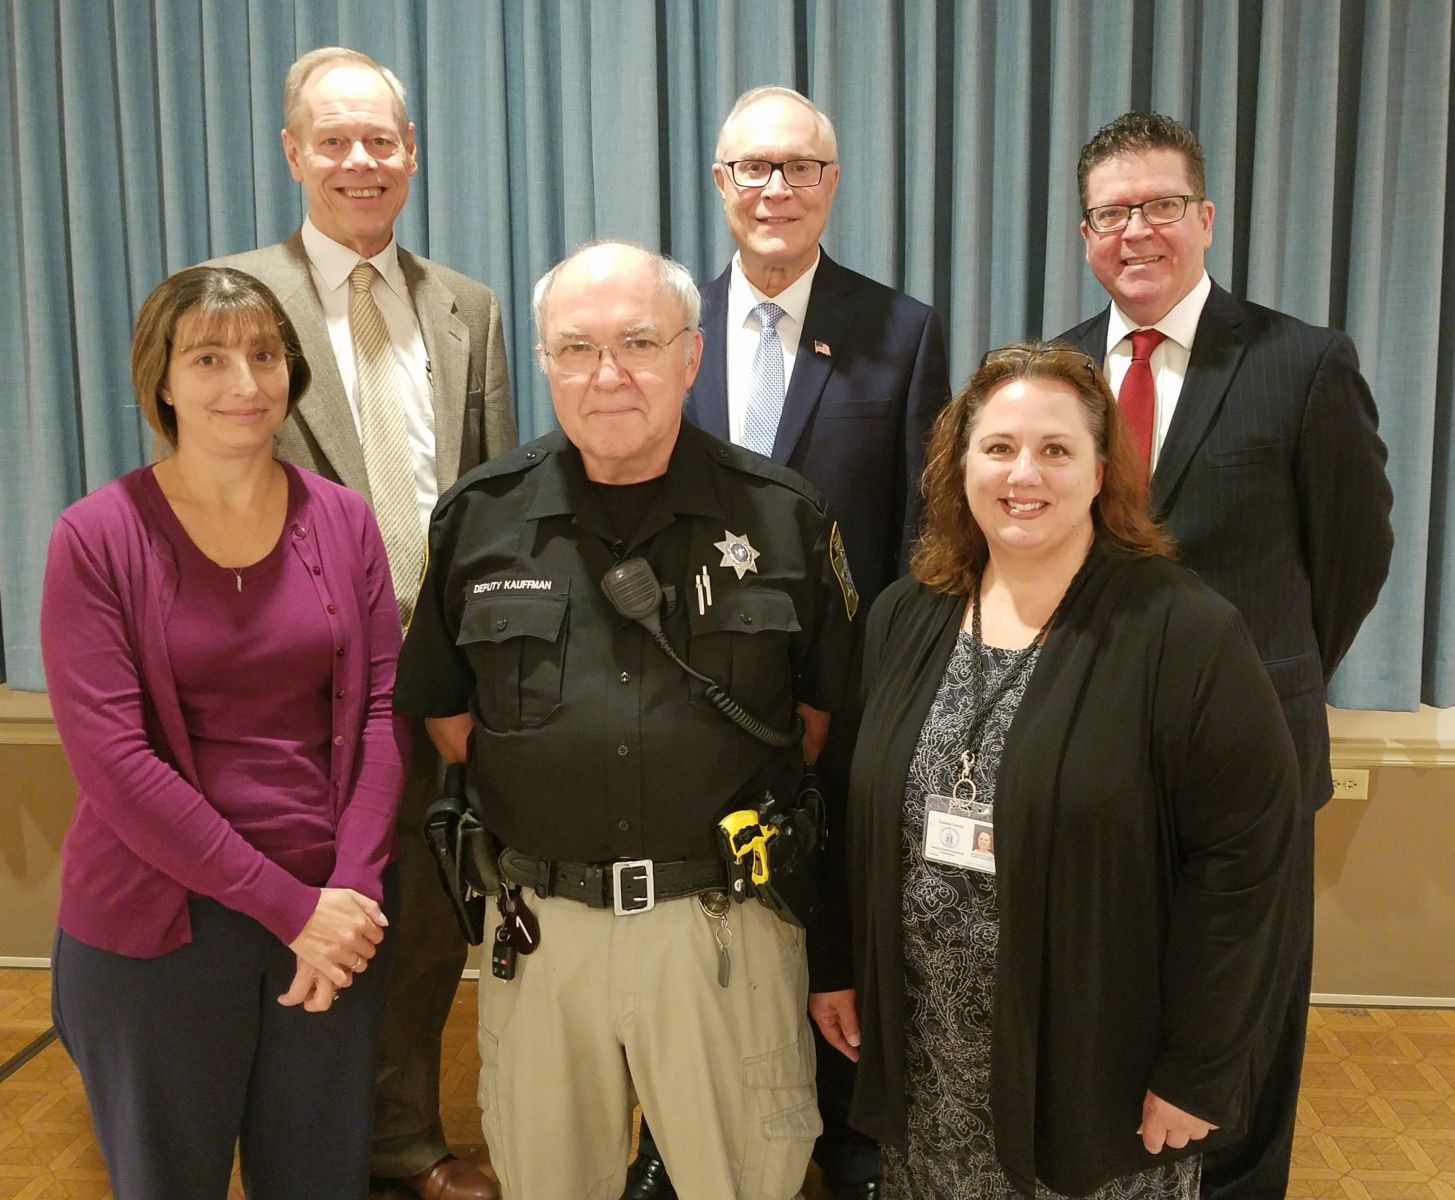 15 Years of Service Pictured above (left to right): top row- Commissioner Bob Ziobrowski, Commissioner Bob Thomas, Commissioner Chairman Dave Keller; bottom row- Ellen Eckert, William Kauffman, Kimberly Lucas Missing from photo:  David Eckert